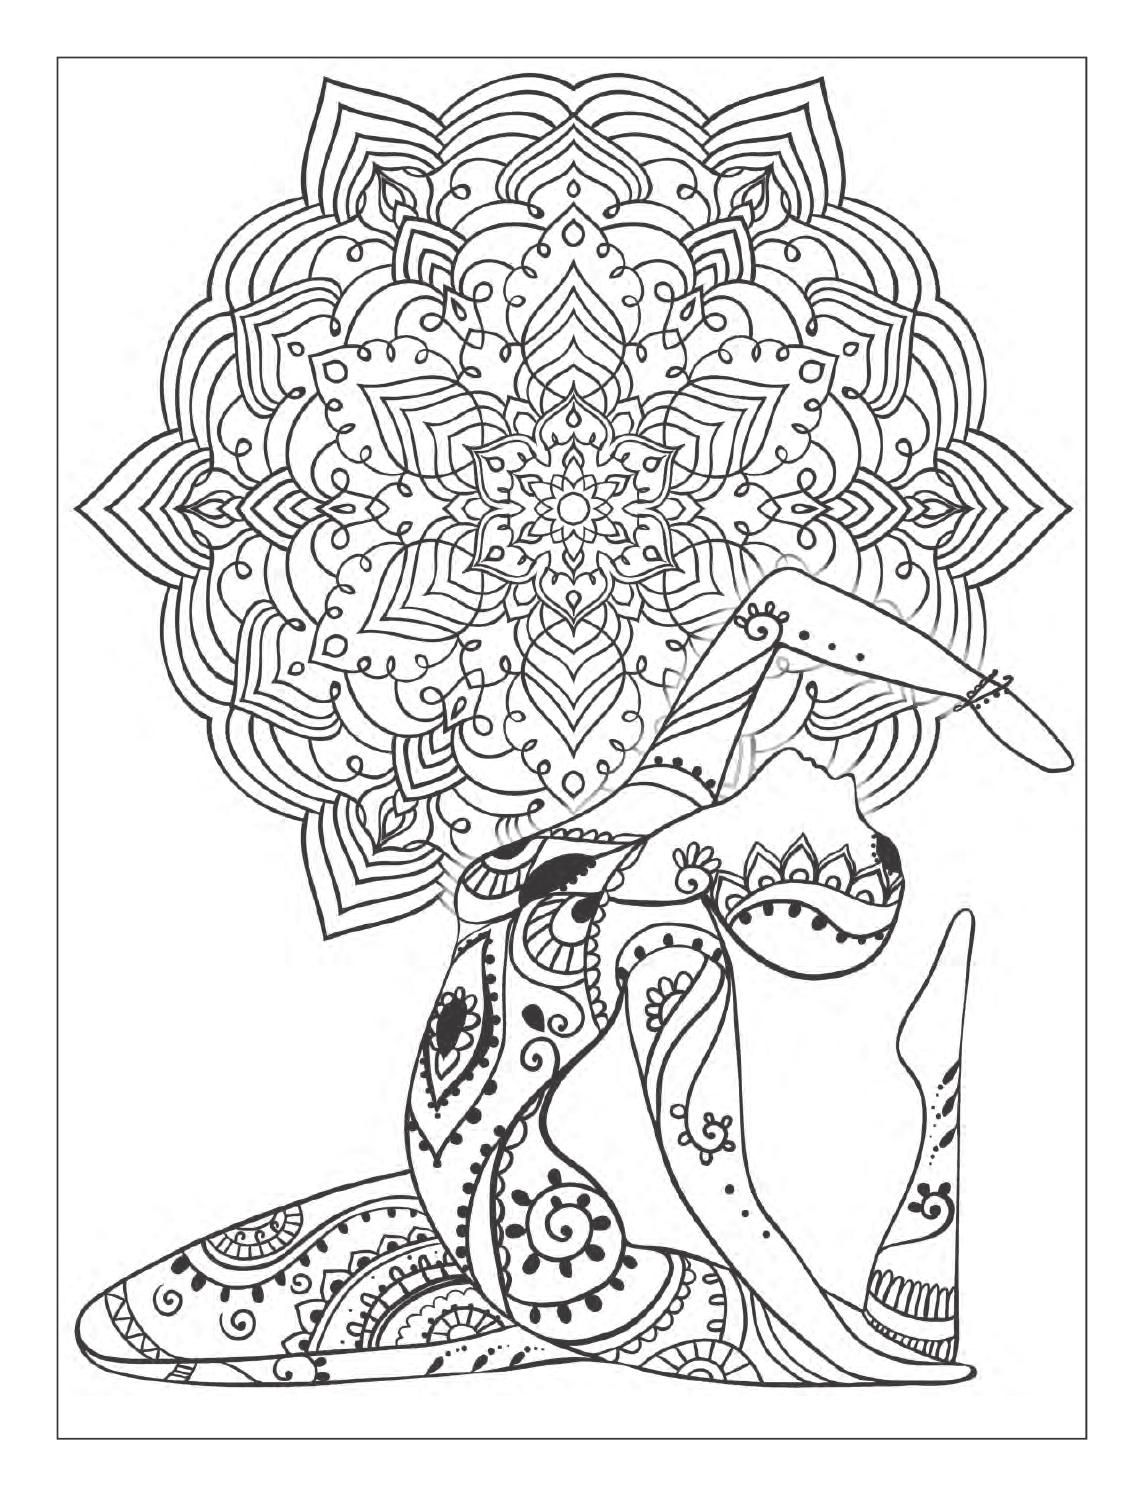 Yoga coloring pages for adults yoga best free coloring pages for Yoga coloring pages